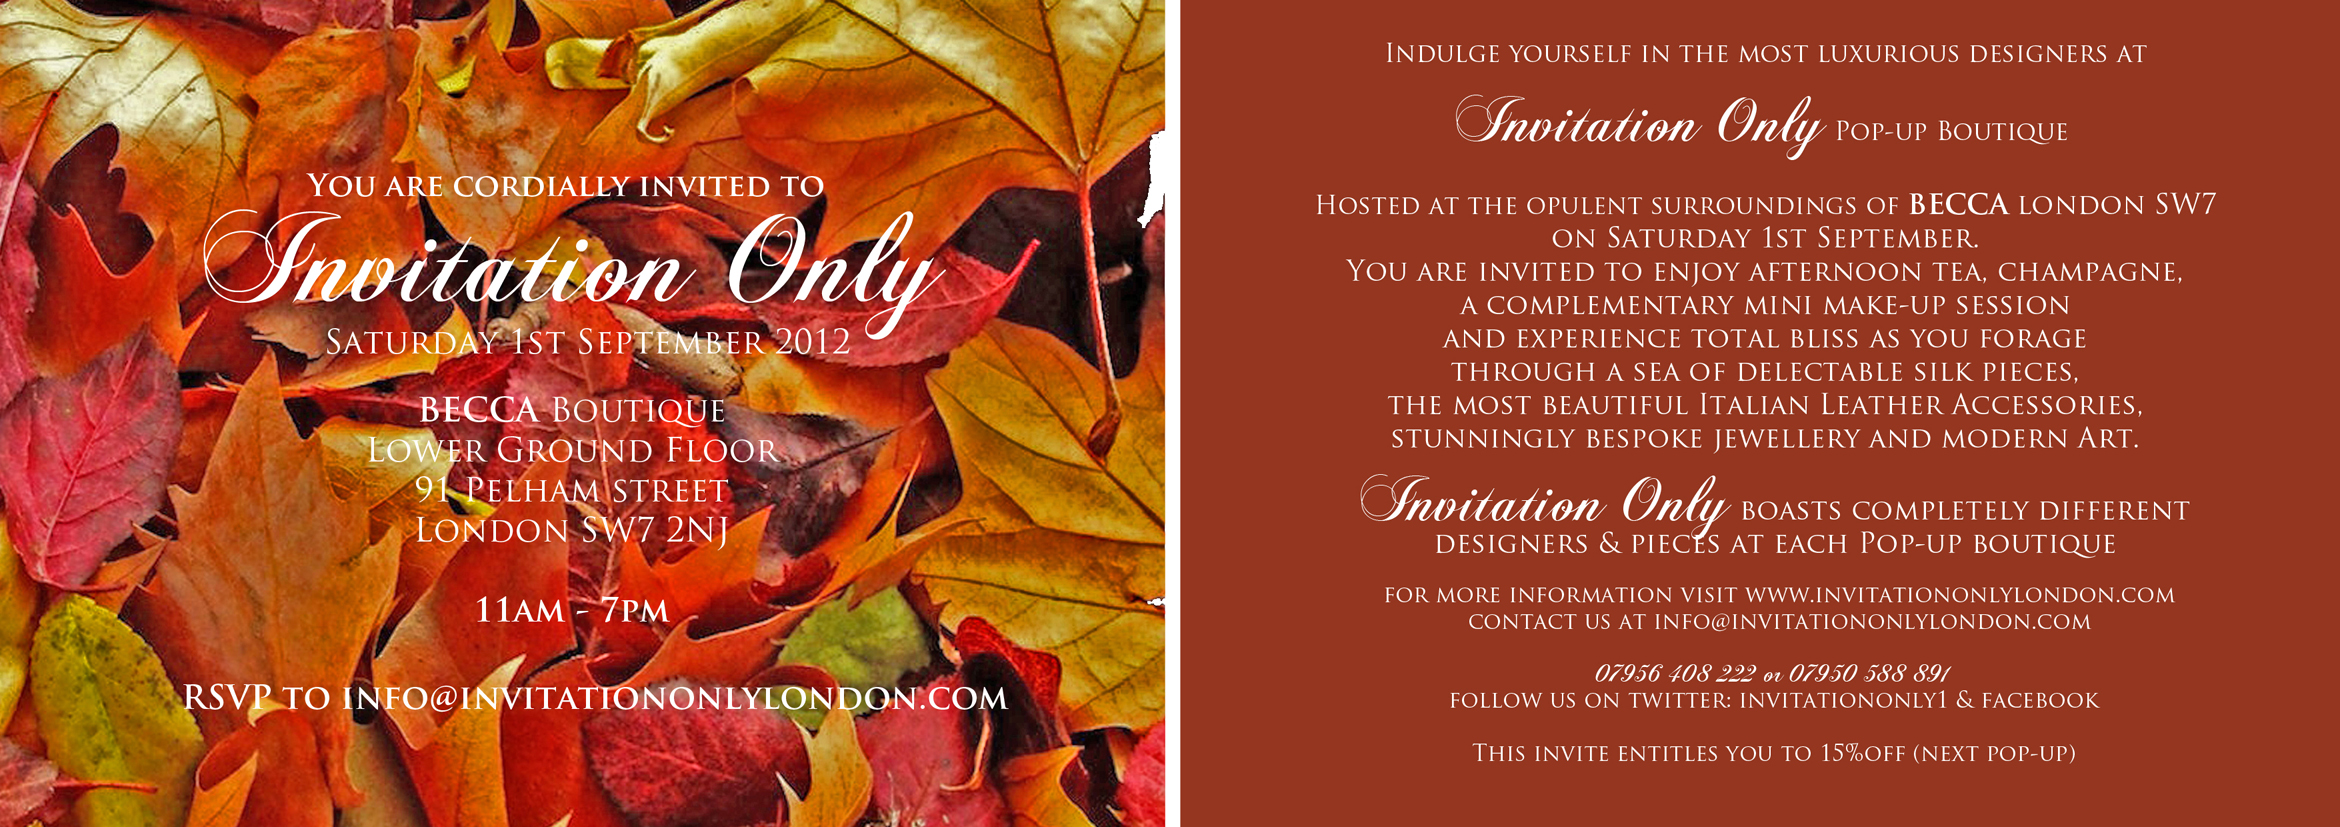 September S Invitation Only Event The London Lassie